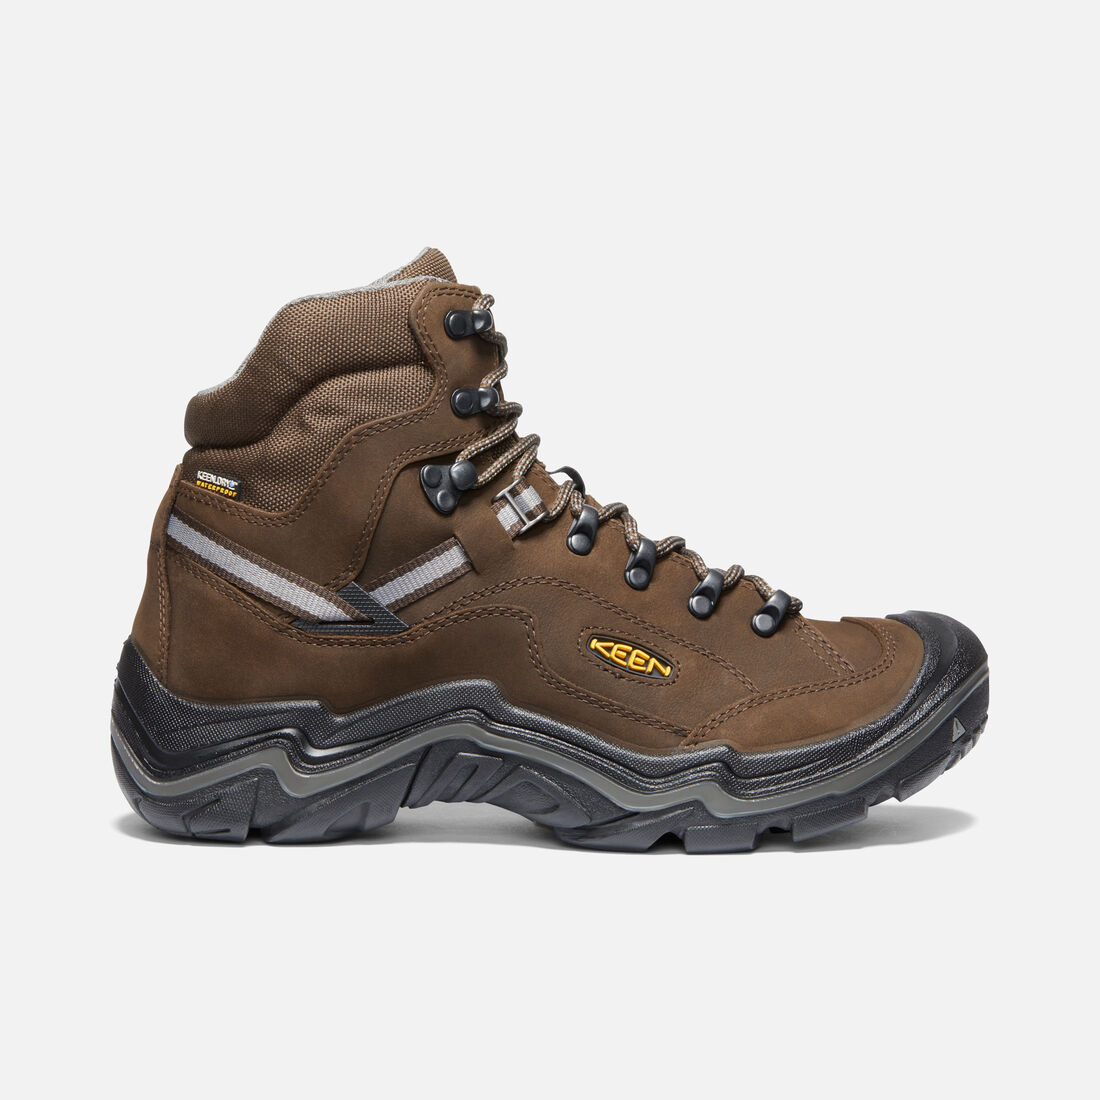 Men's DURAND II MID WP WIDE in CASCADE BROWN/GARGOYLE - large view.